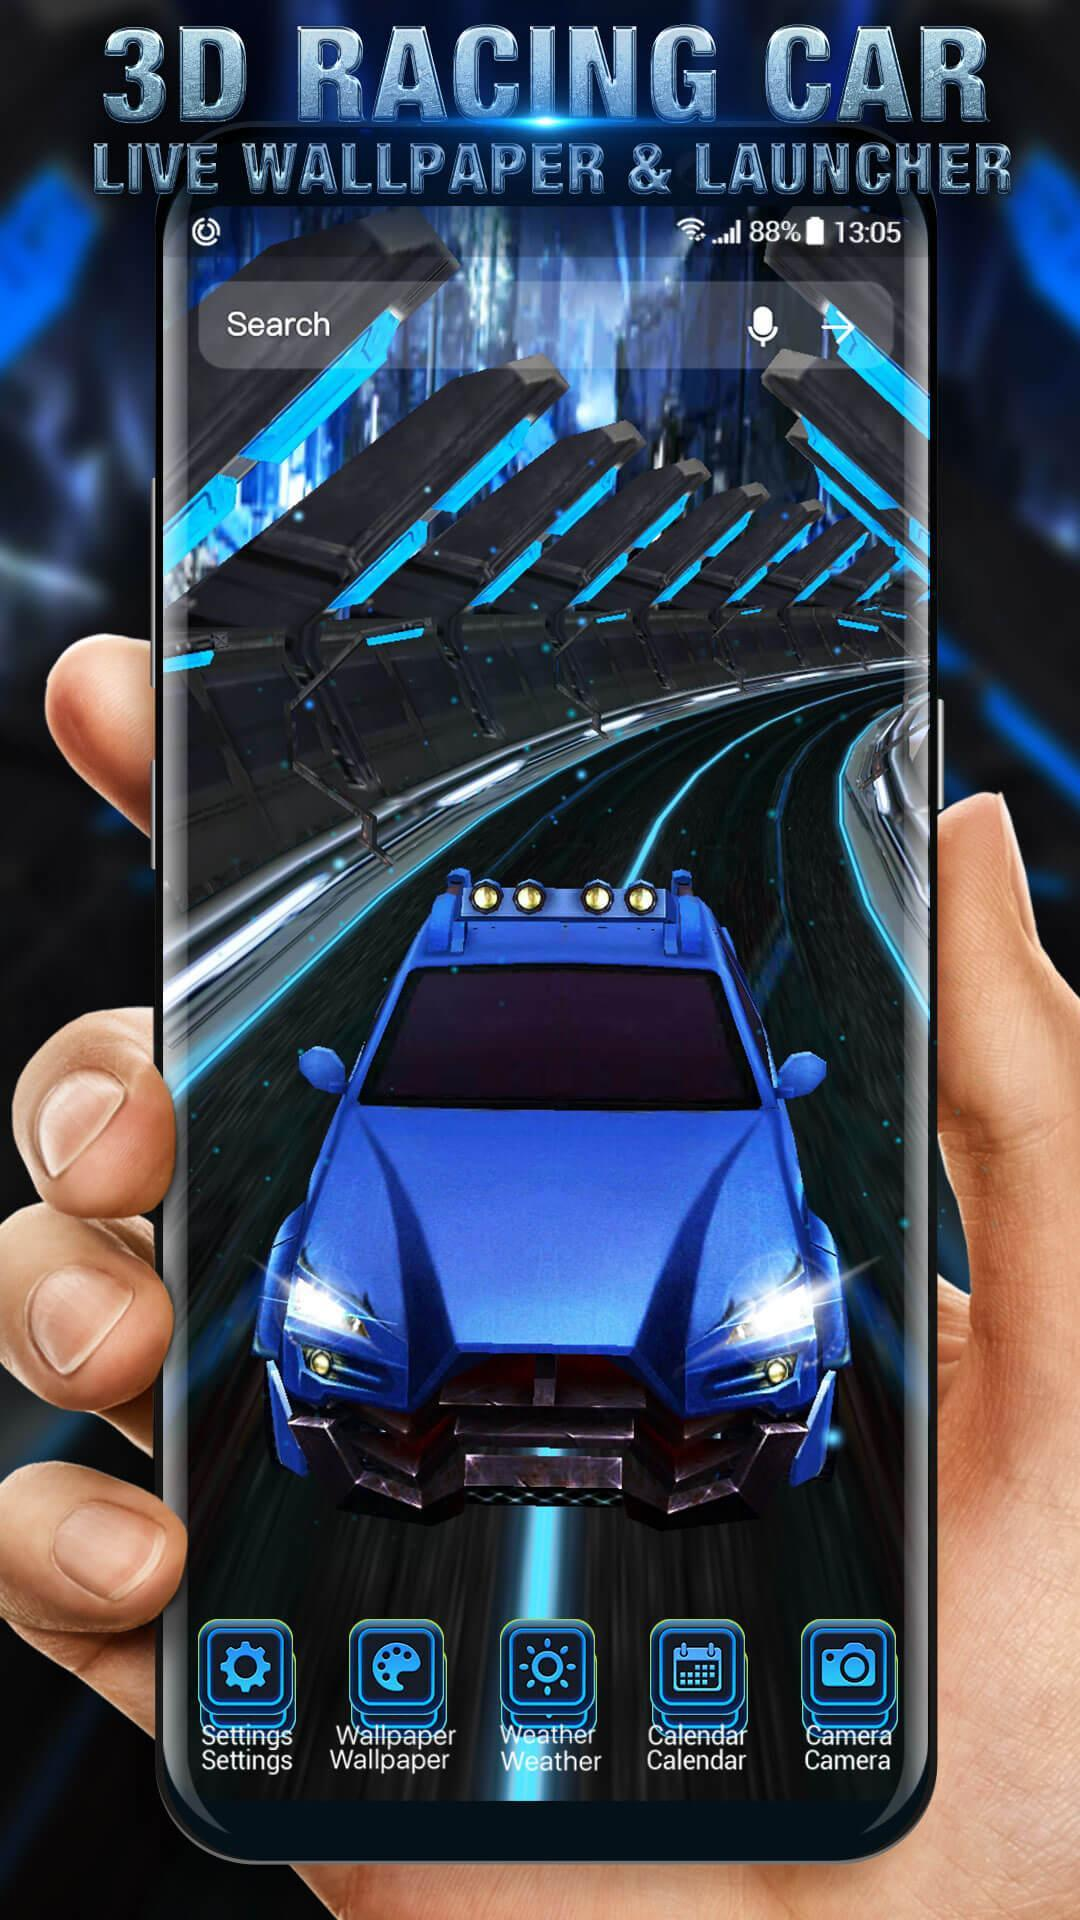 3d Racing Car Live Wallpaper For Android Apk Download